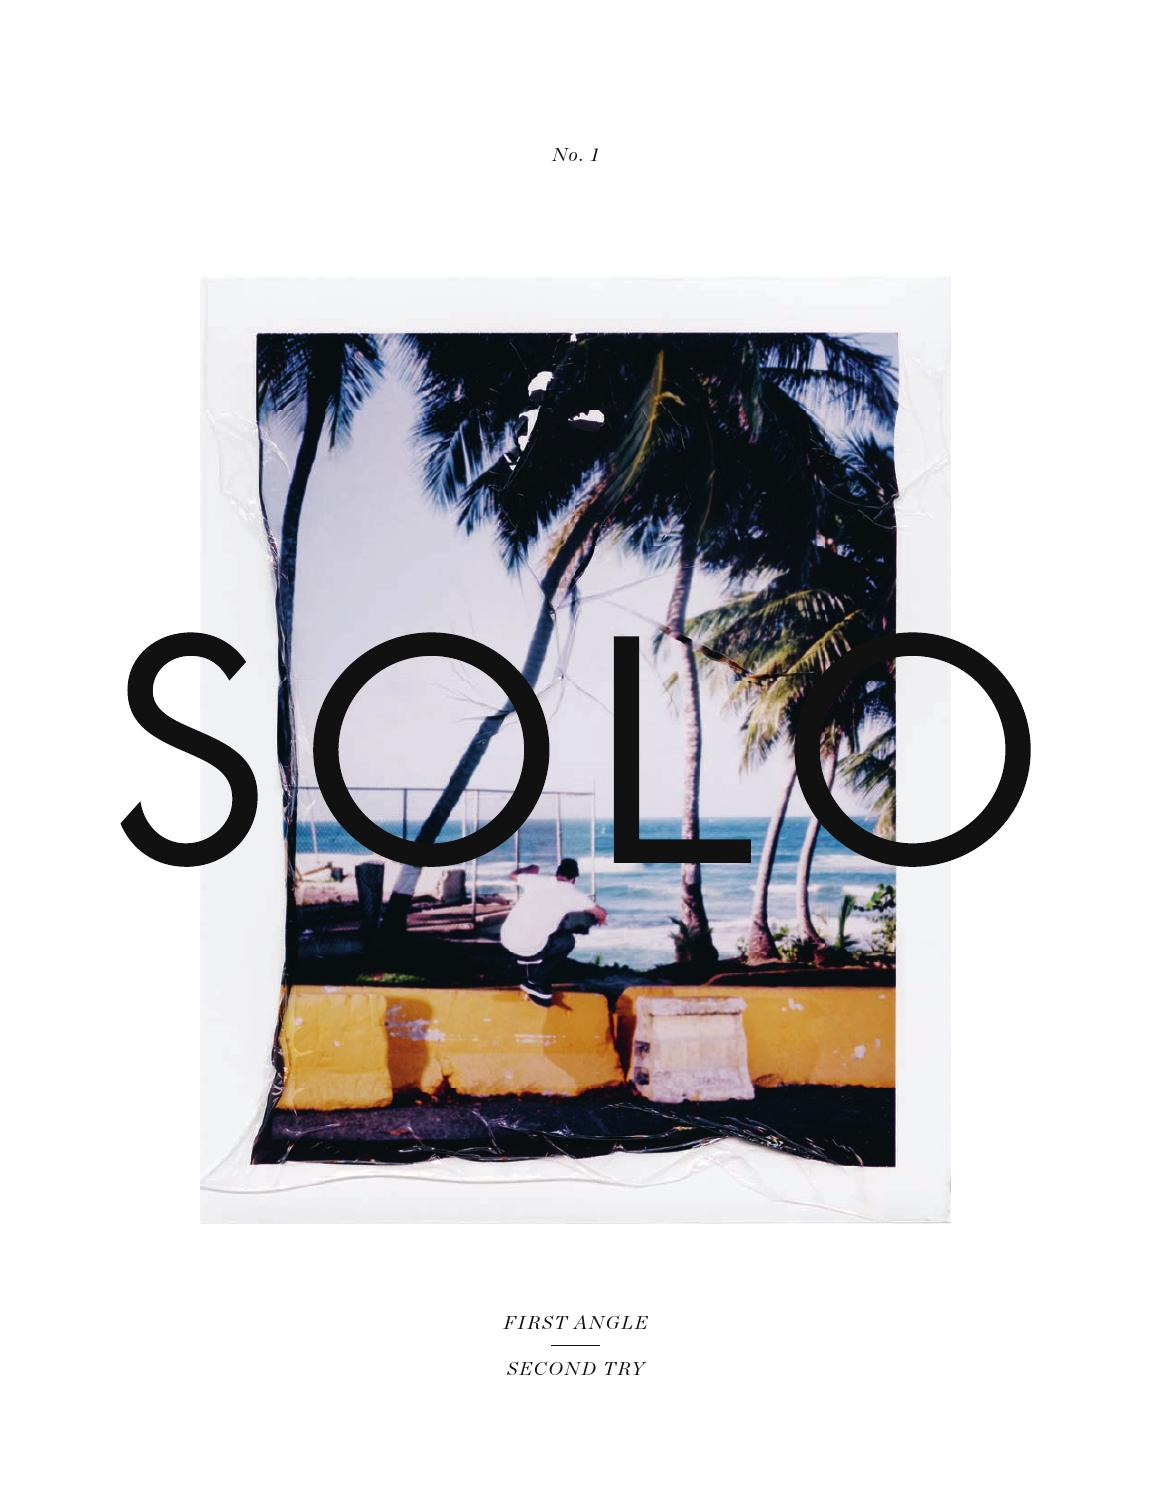 SOLO #1 by Solo Skateboard Magazine - issuu